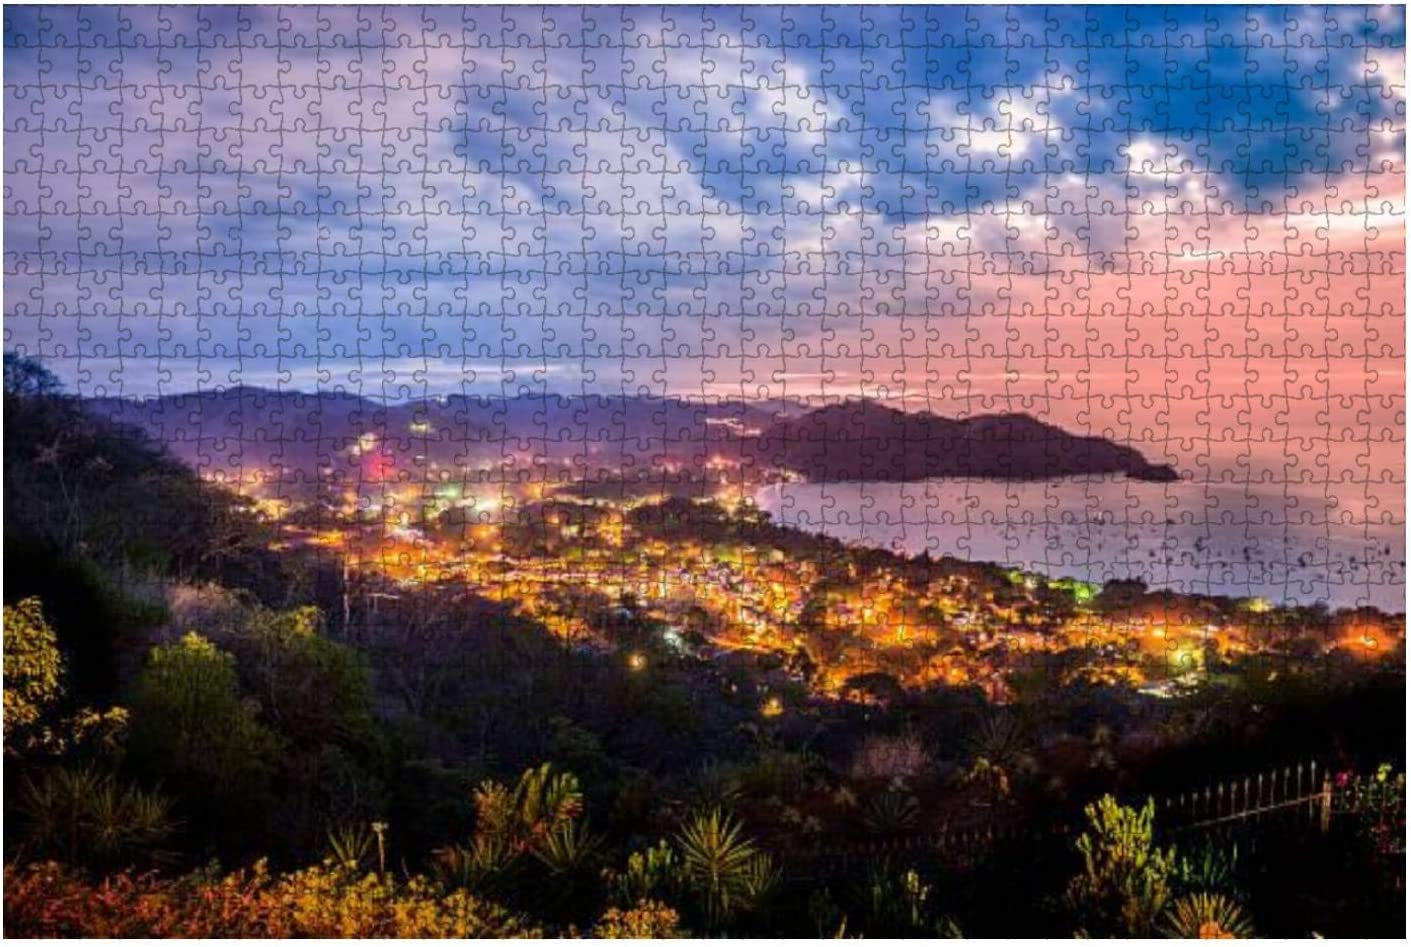 Playas del Coco, guanacaste, Costa rica at Dusk Water City Stock 1000 Piece Wooden Jigsaw Puzzle DIY Children Educational Puzzles Adult Decompression Gift Creative Games Toys Puzzles Home Decor